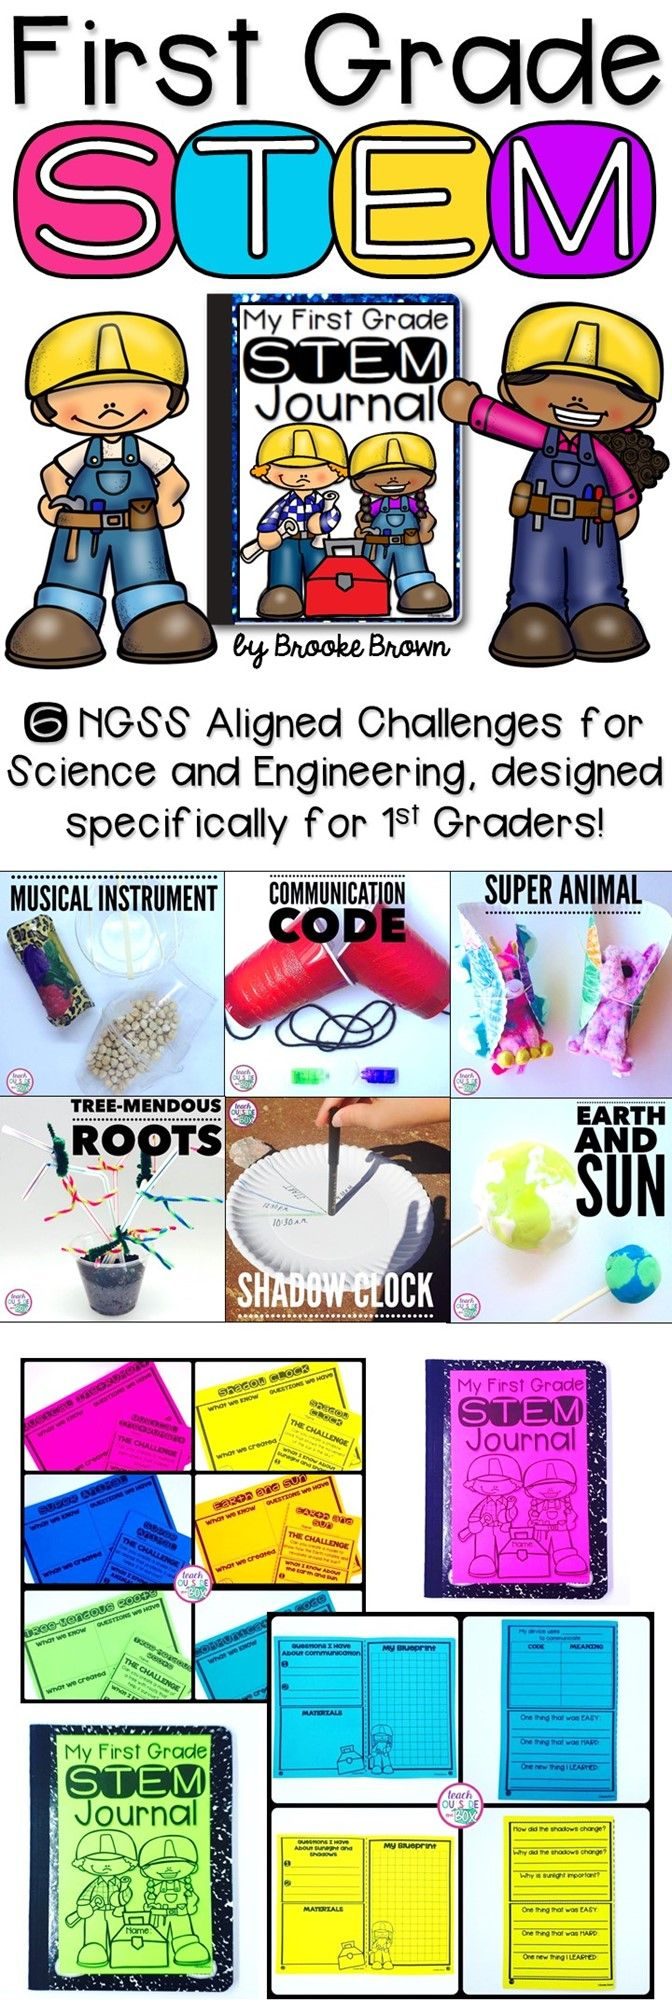 Six NGSS Aligned STEM Challenges designed specifically for first graders! Aligns with both Science and Engineering standards!